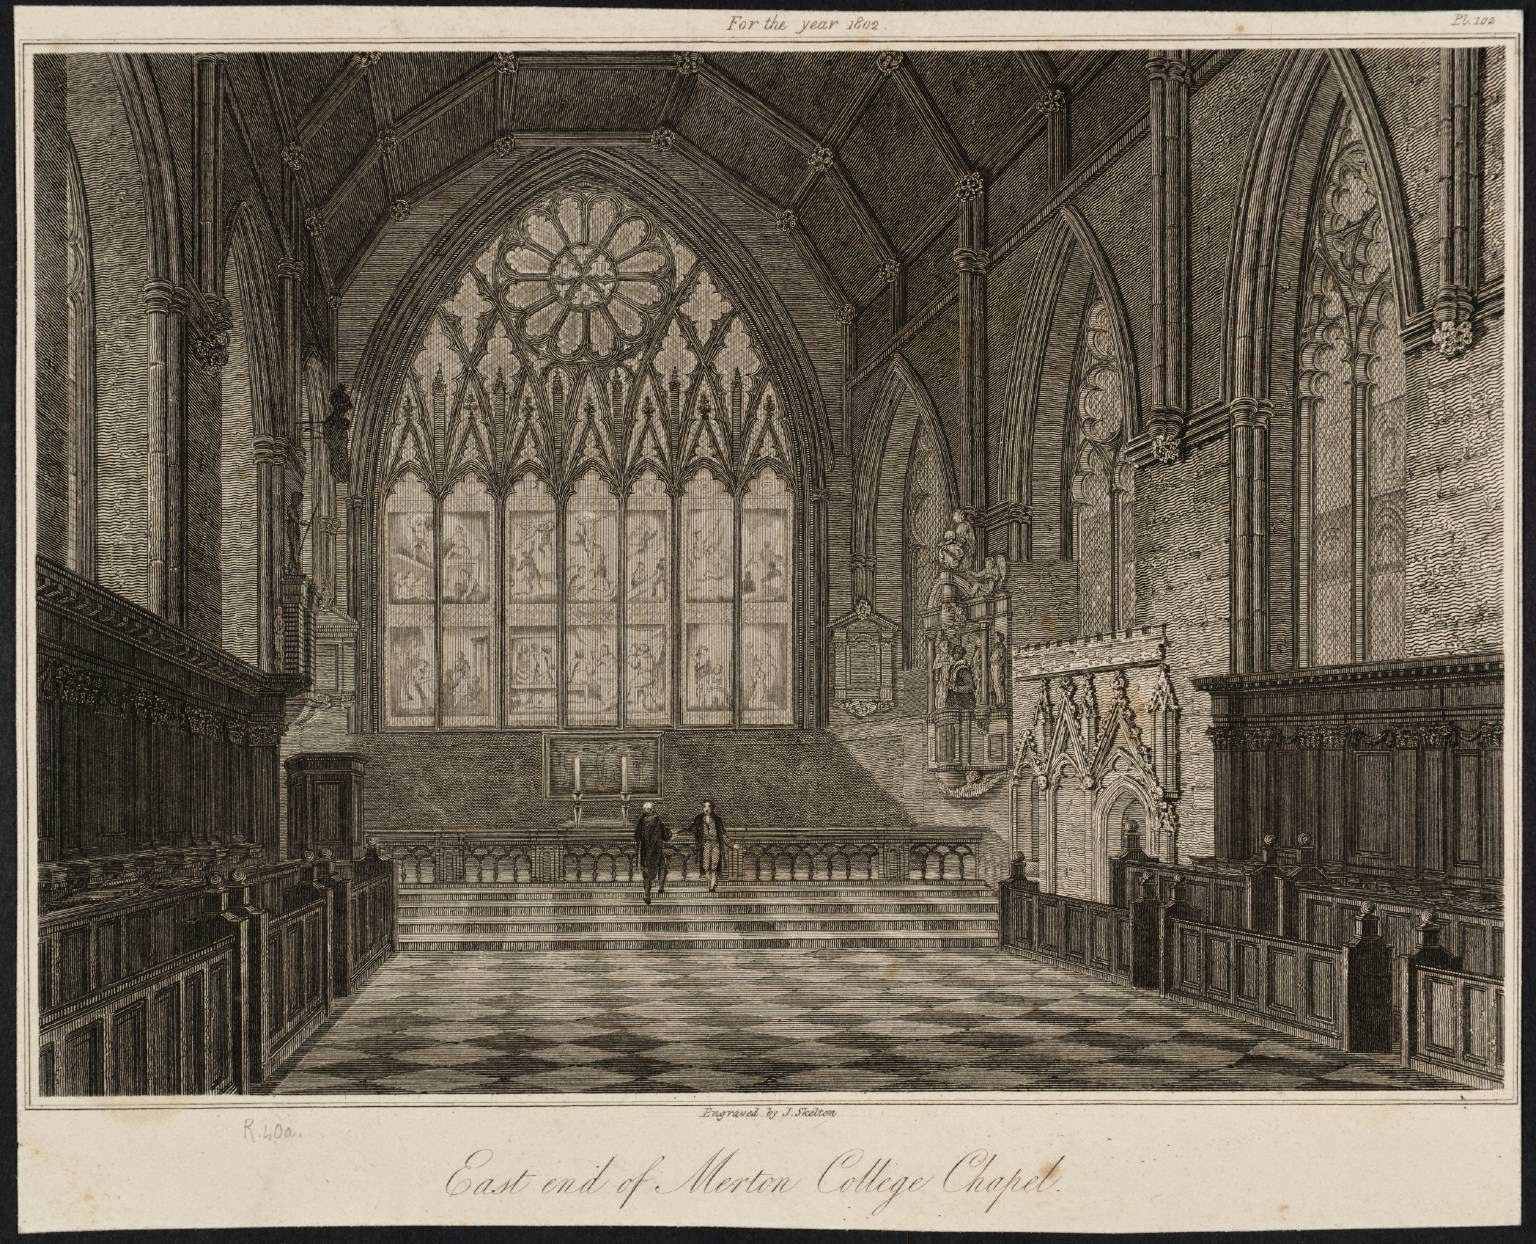 Merton College Chapel, engraving of Turner drawing